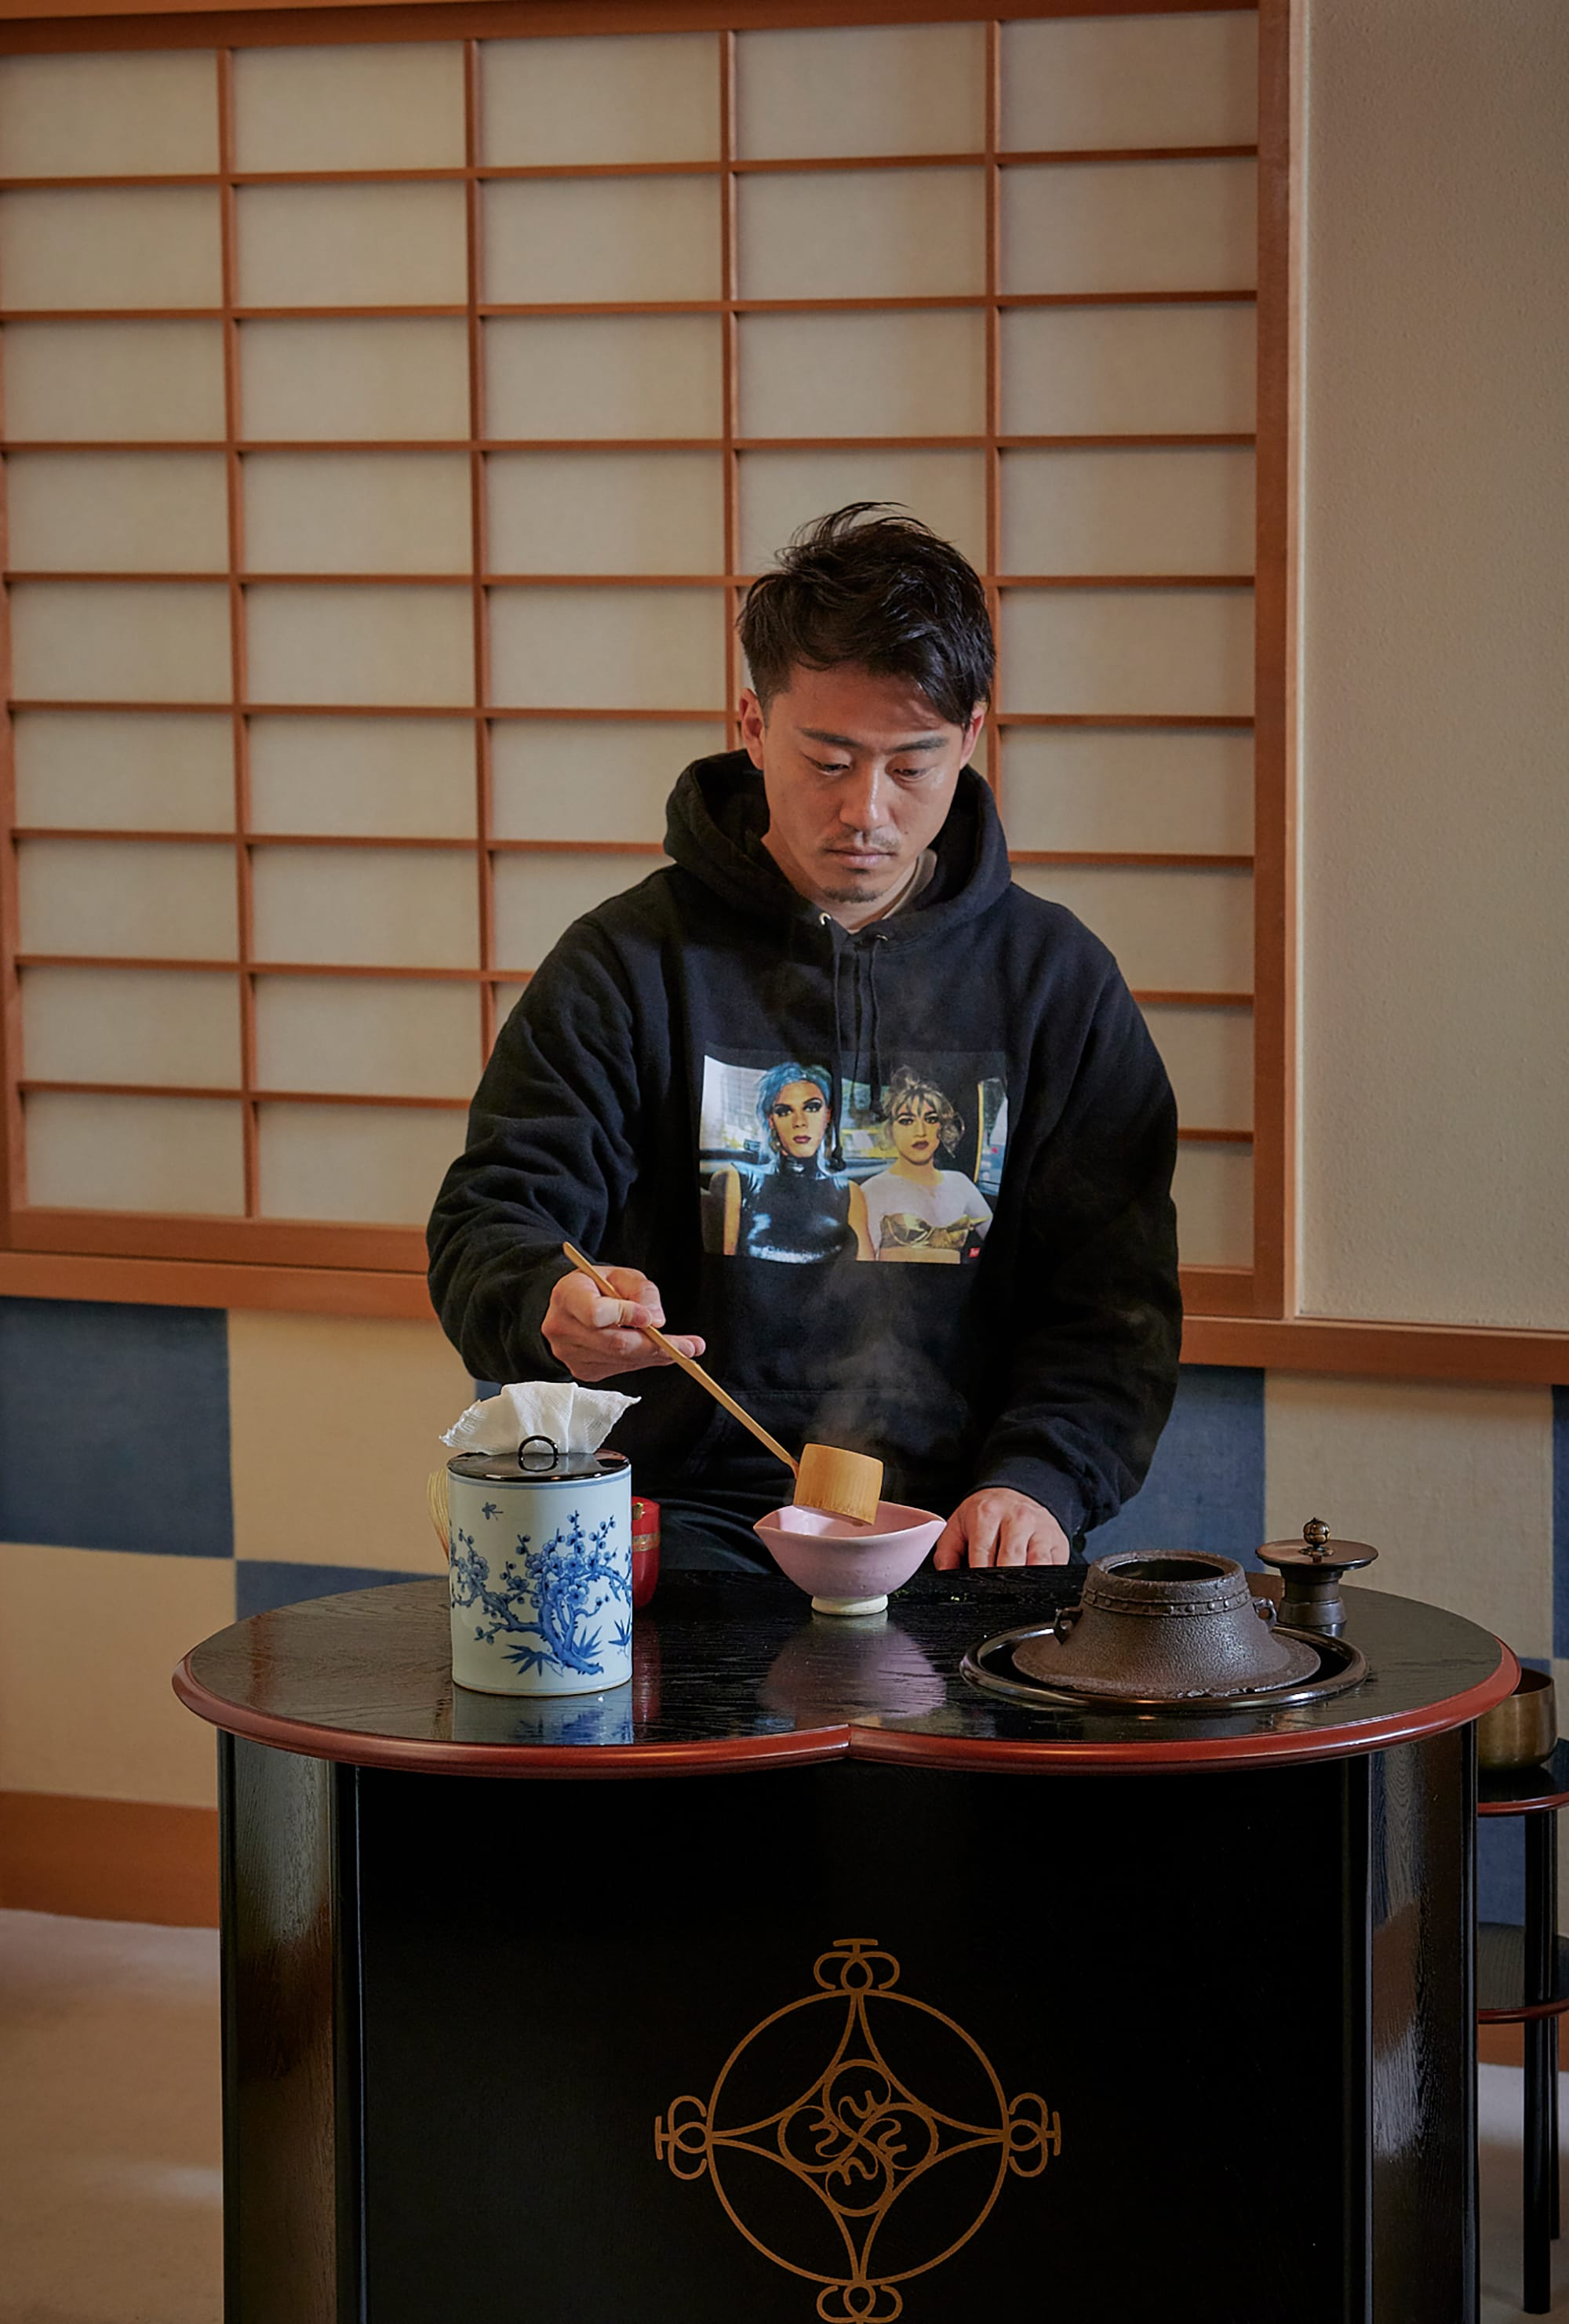 Each athlete made tea. It was the first time to make tea in ryureiseki for Maeda.